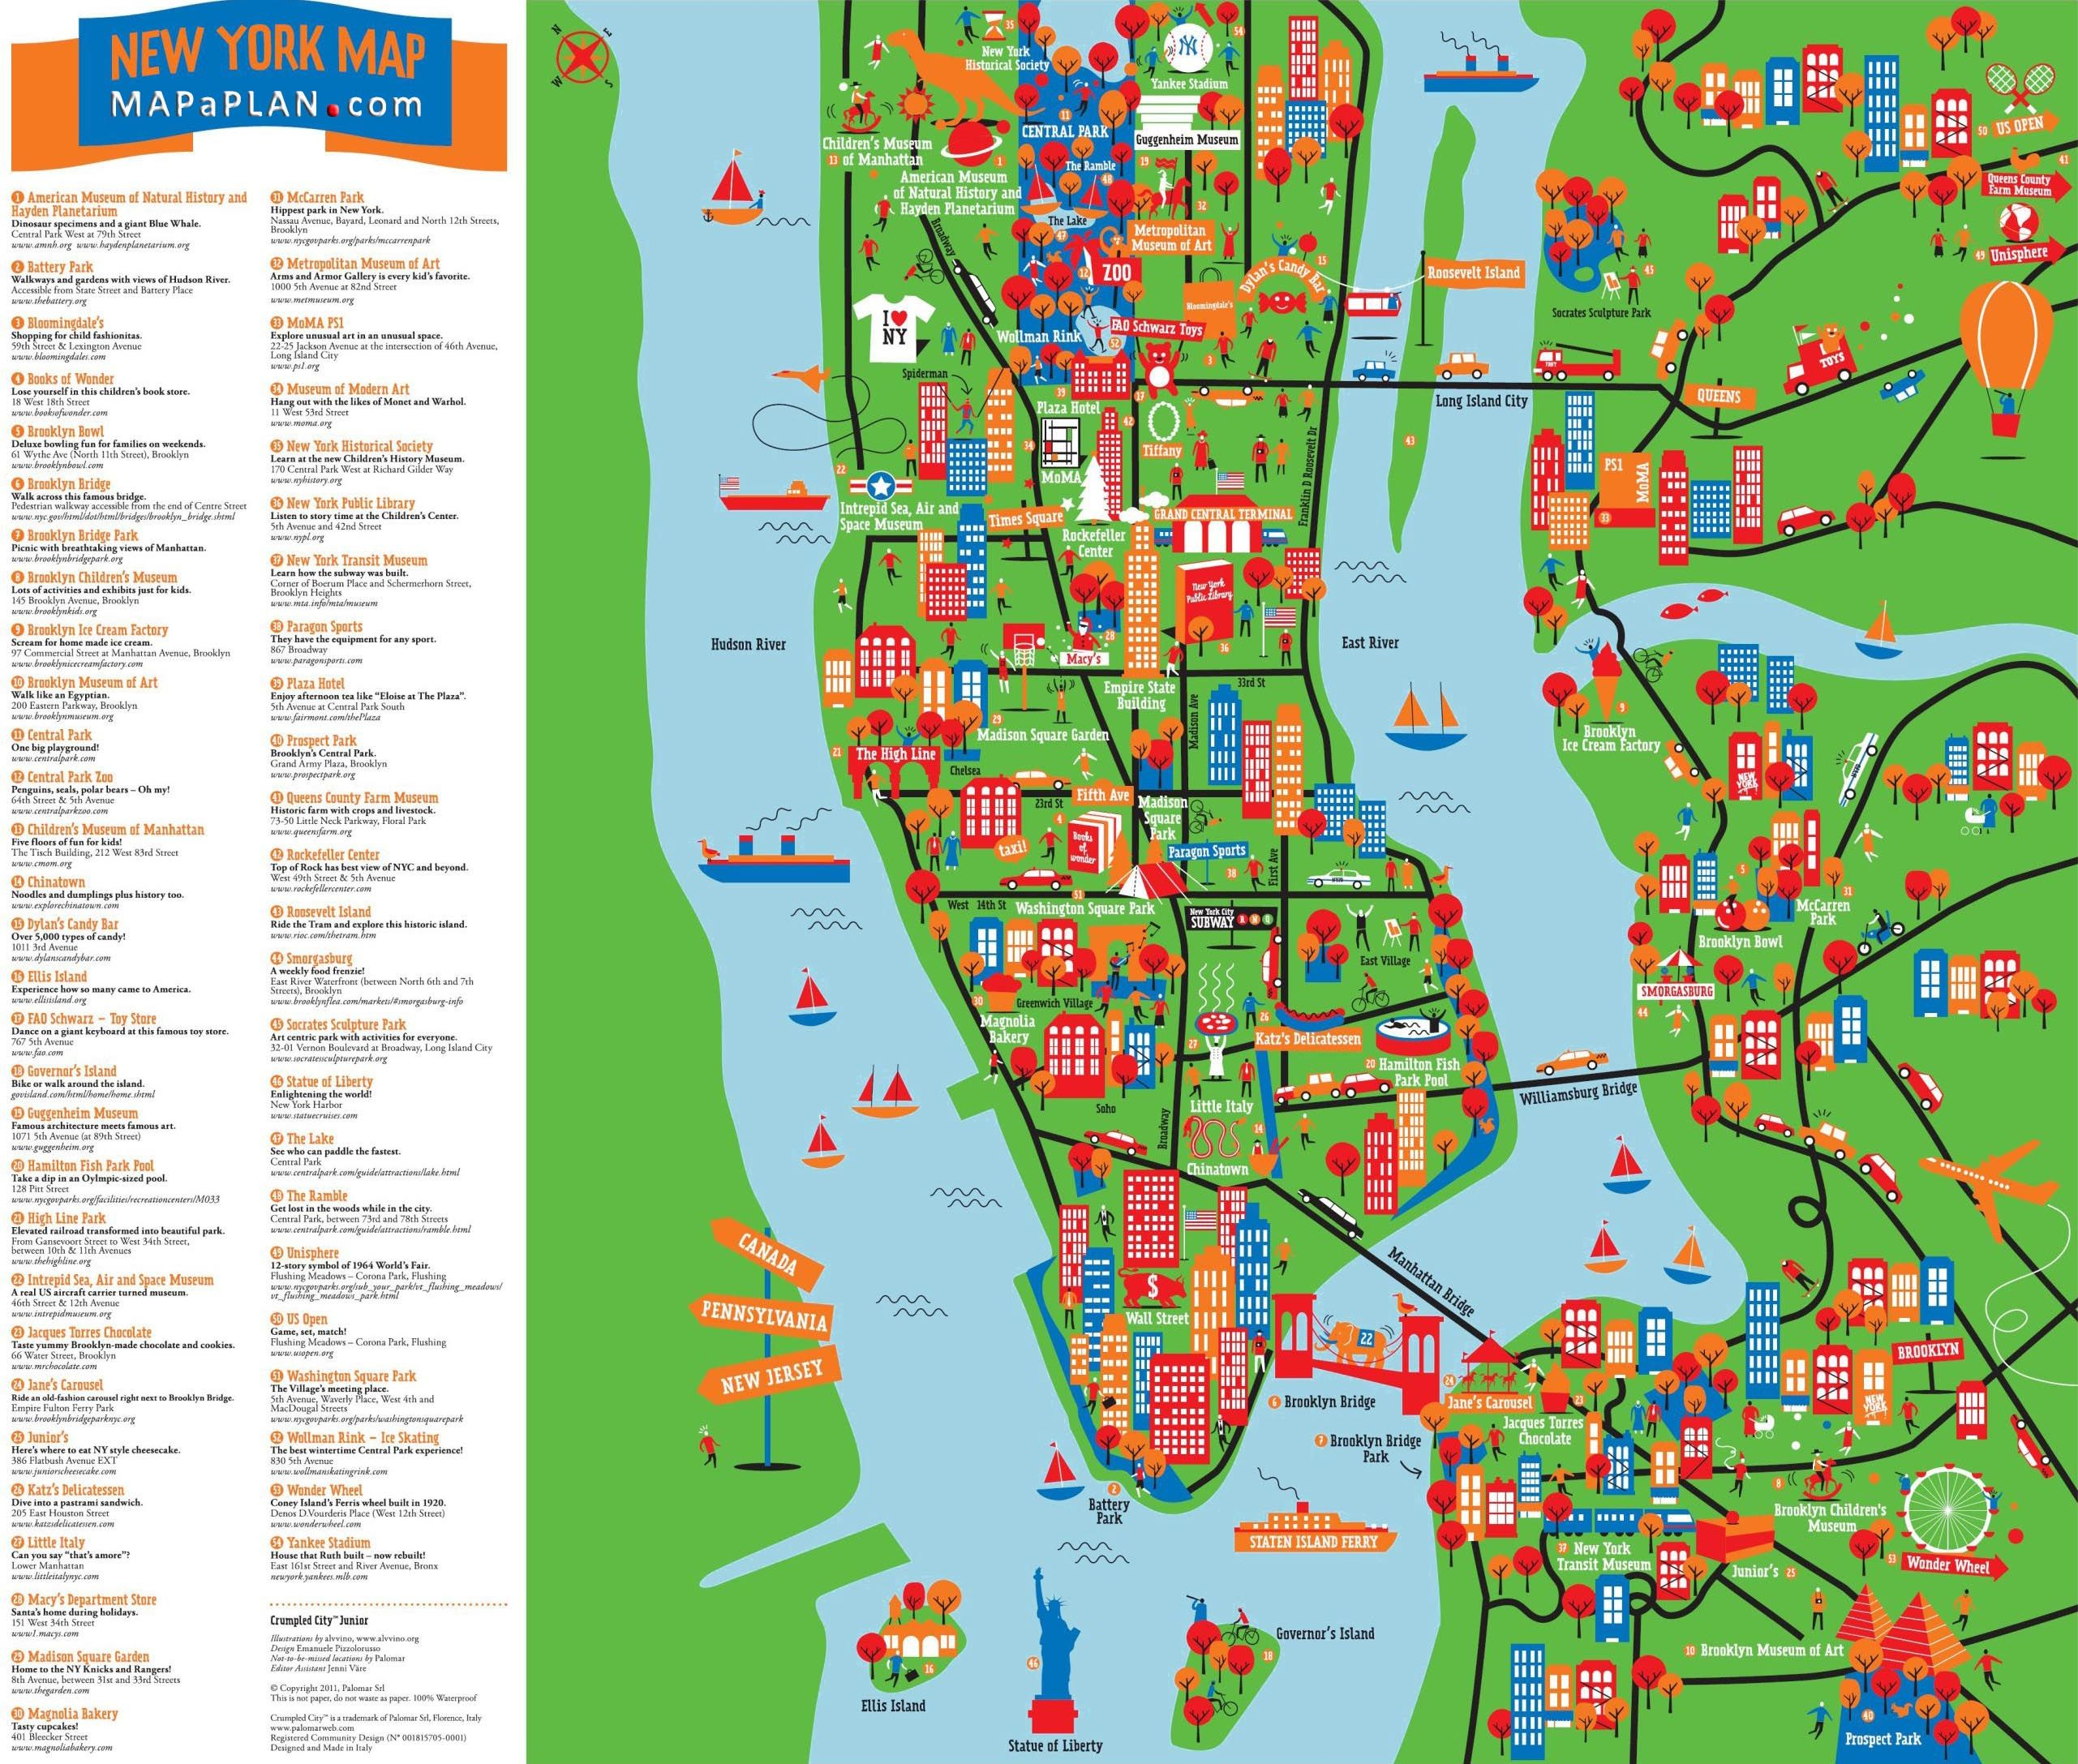 Greatthingstodowithkidschildreninteractivecolorfulnew - New york map city